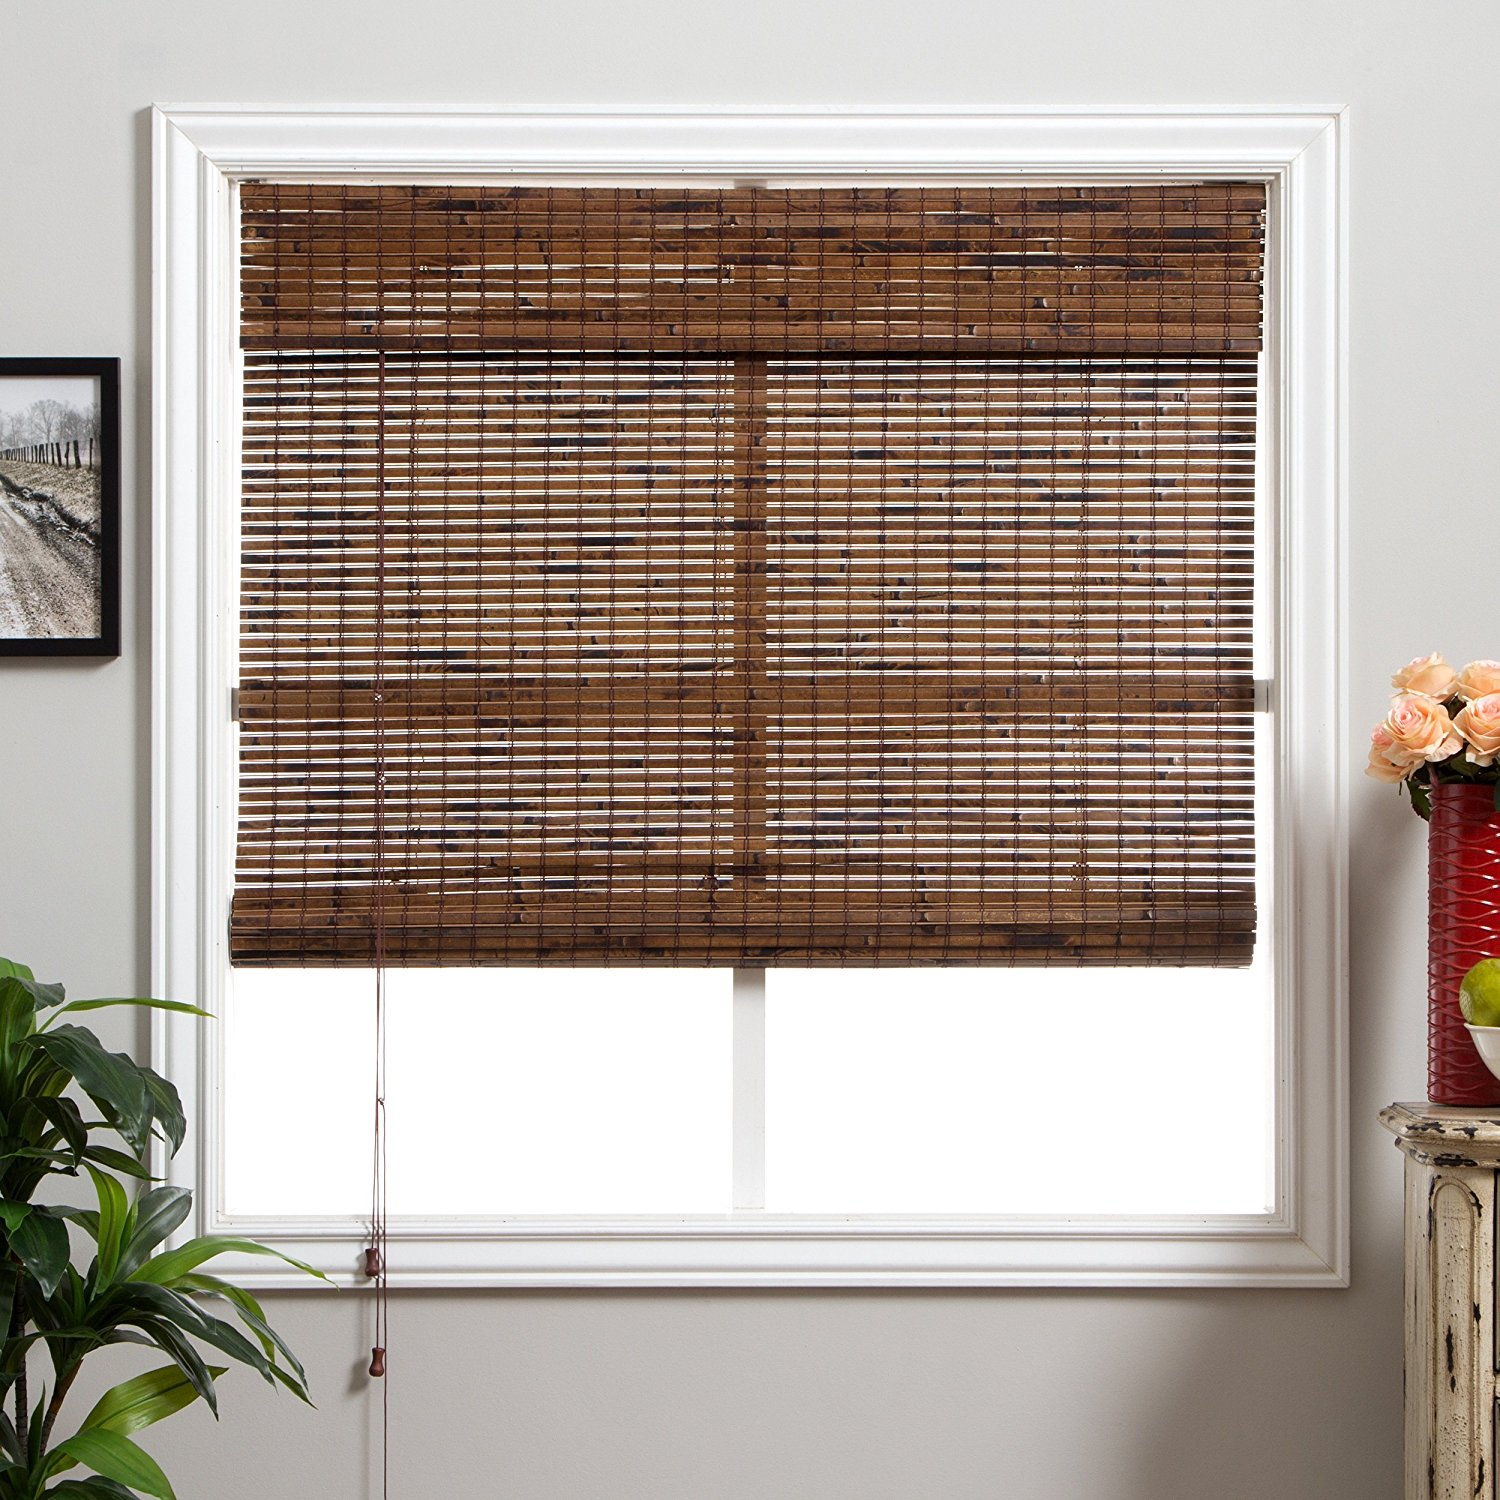 Get Quotations · Single Piece Dark Brown Bamboo Shade, 98 Inches Shade,  Window Blind, Includes Hardware